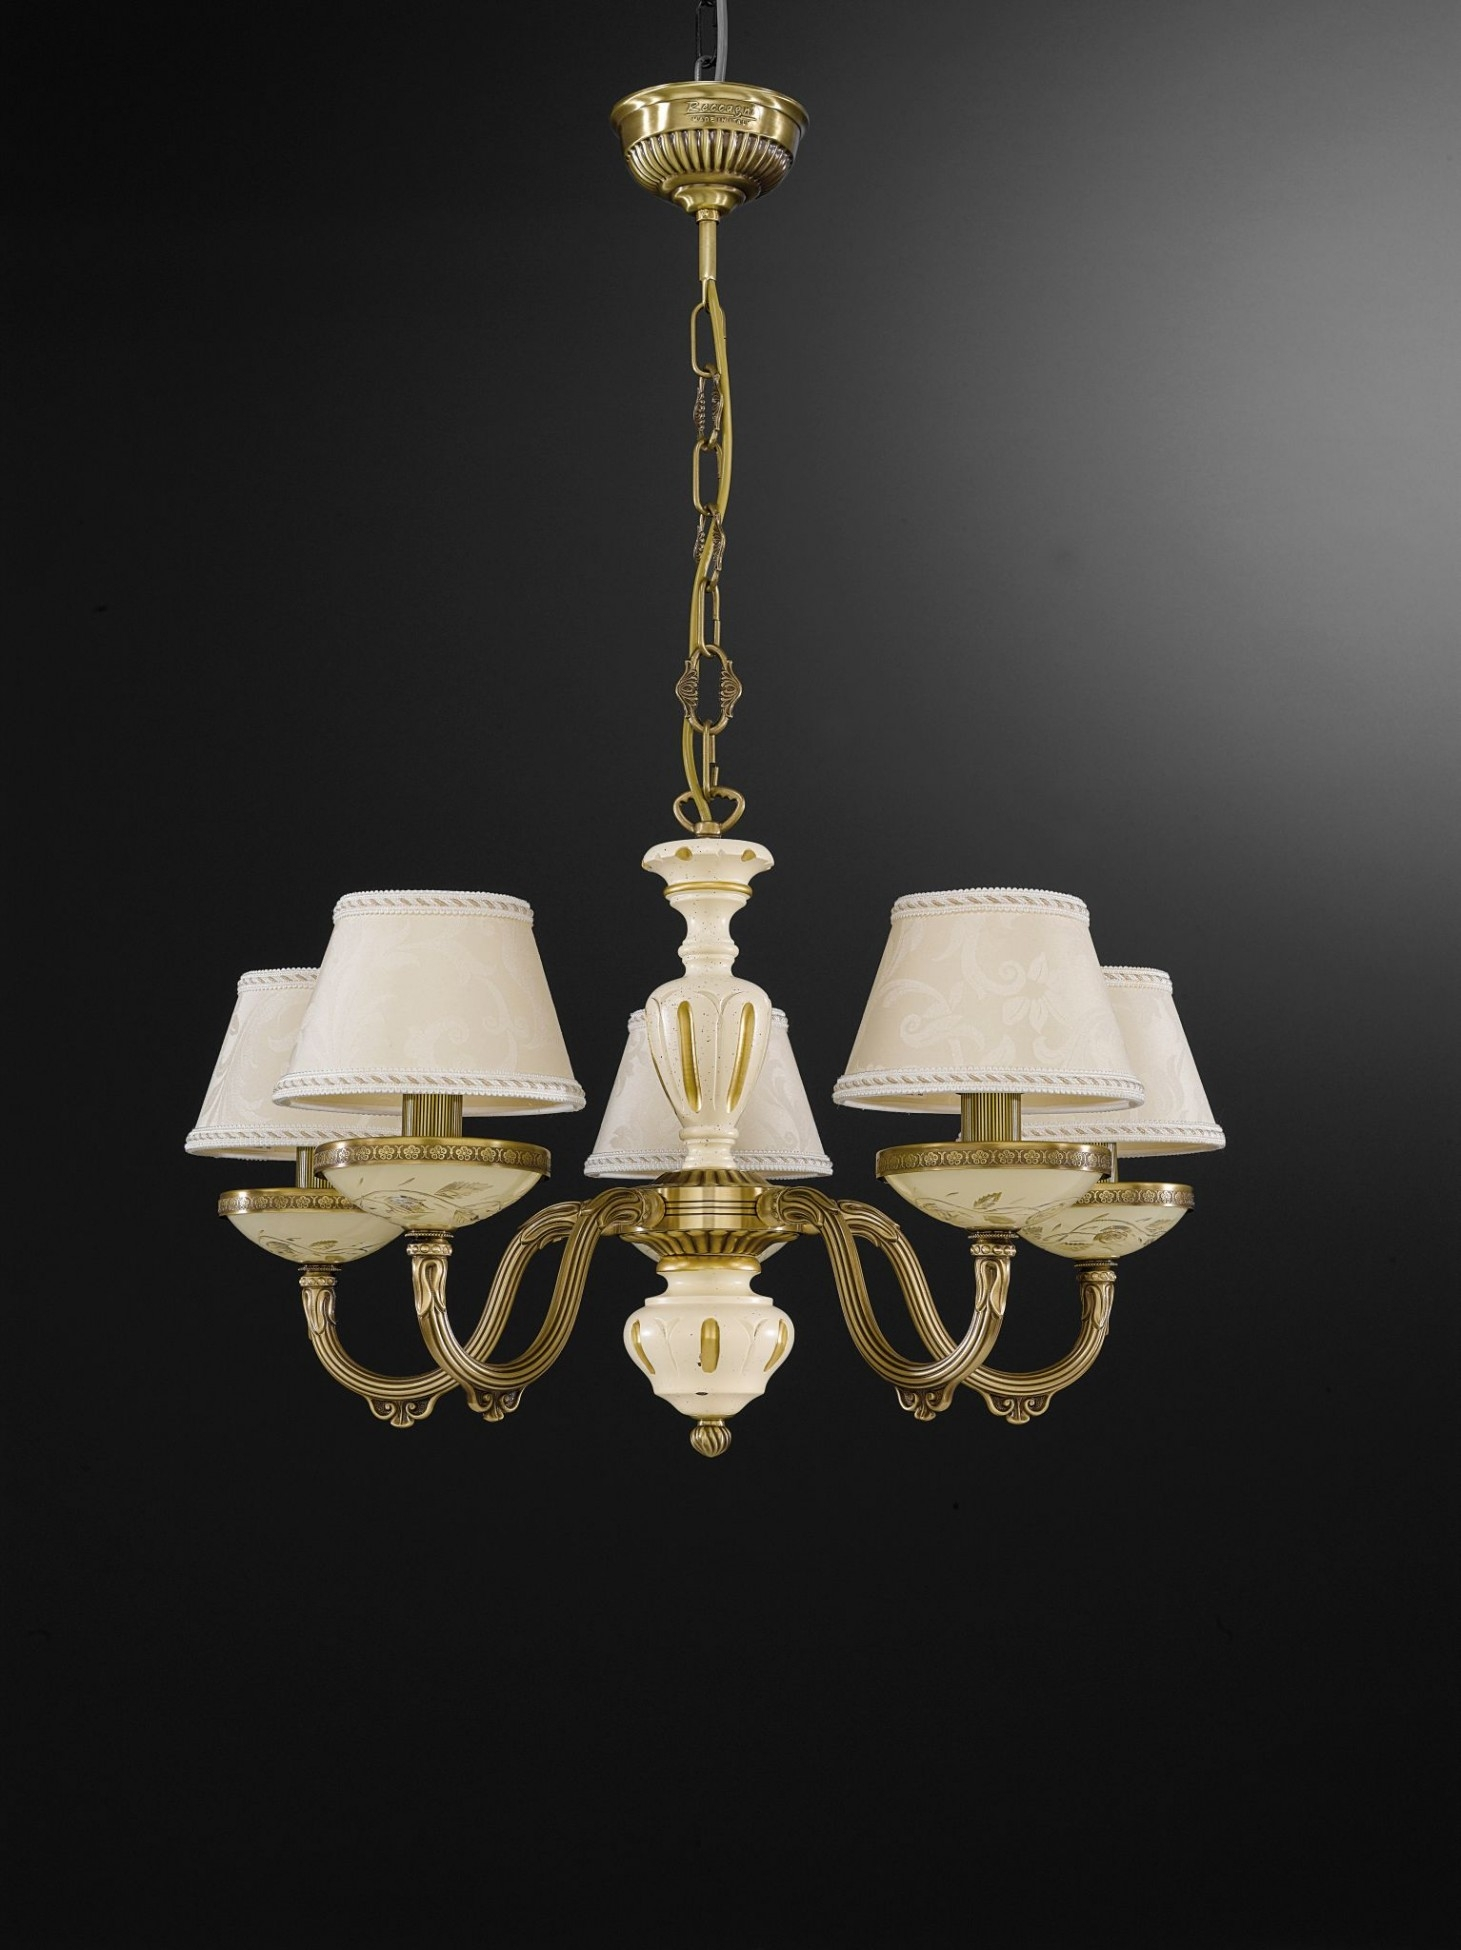 5 Lights Brass Wood And Cream Glass Chandelier With Lamp Shades With Regard To Cream Chandelier Lights (Image 2 of 15)